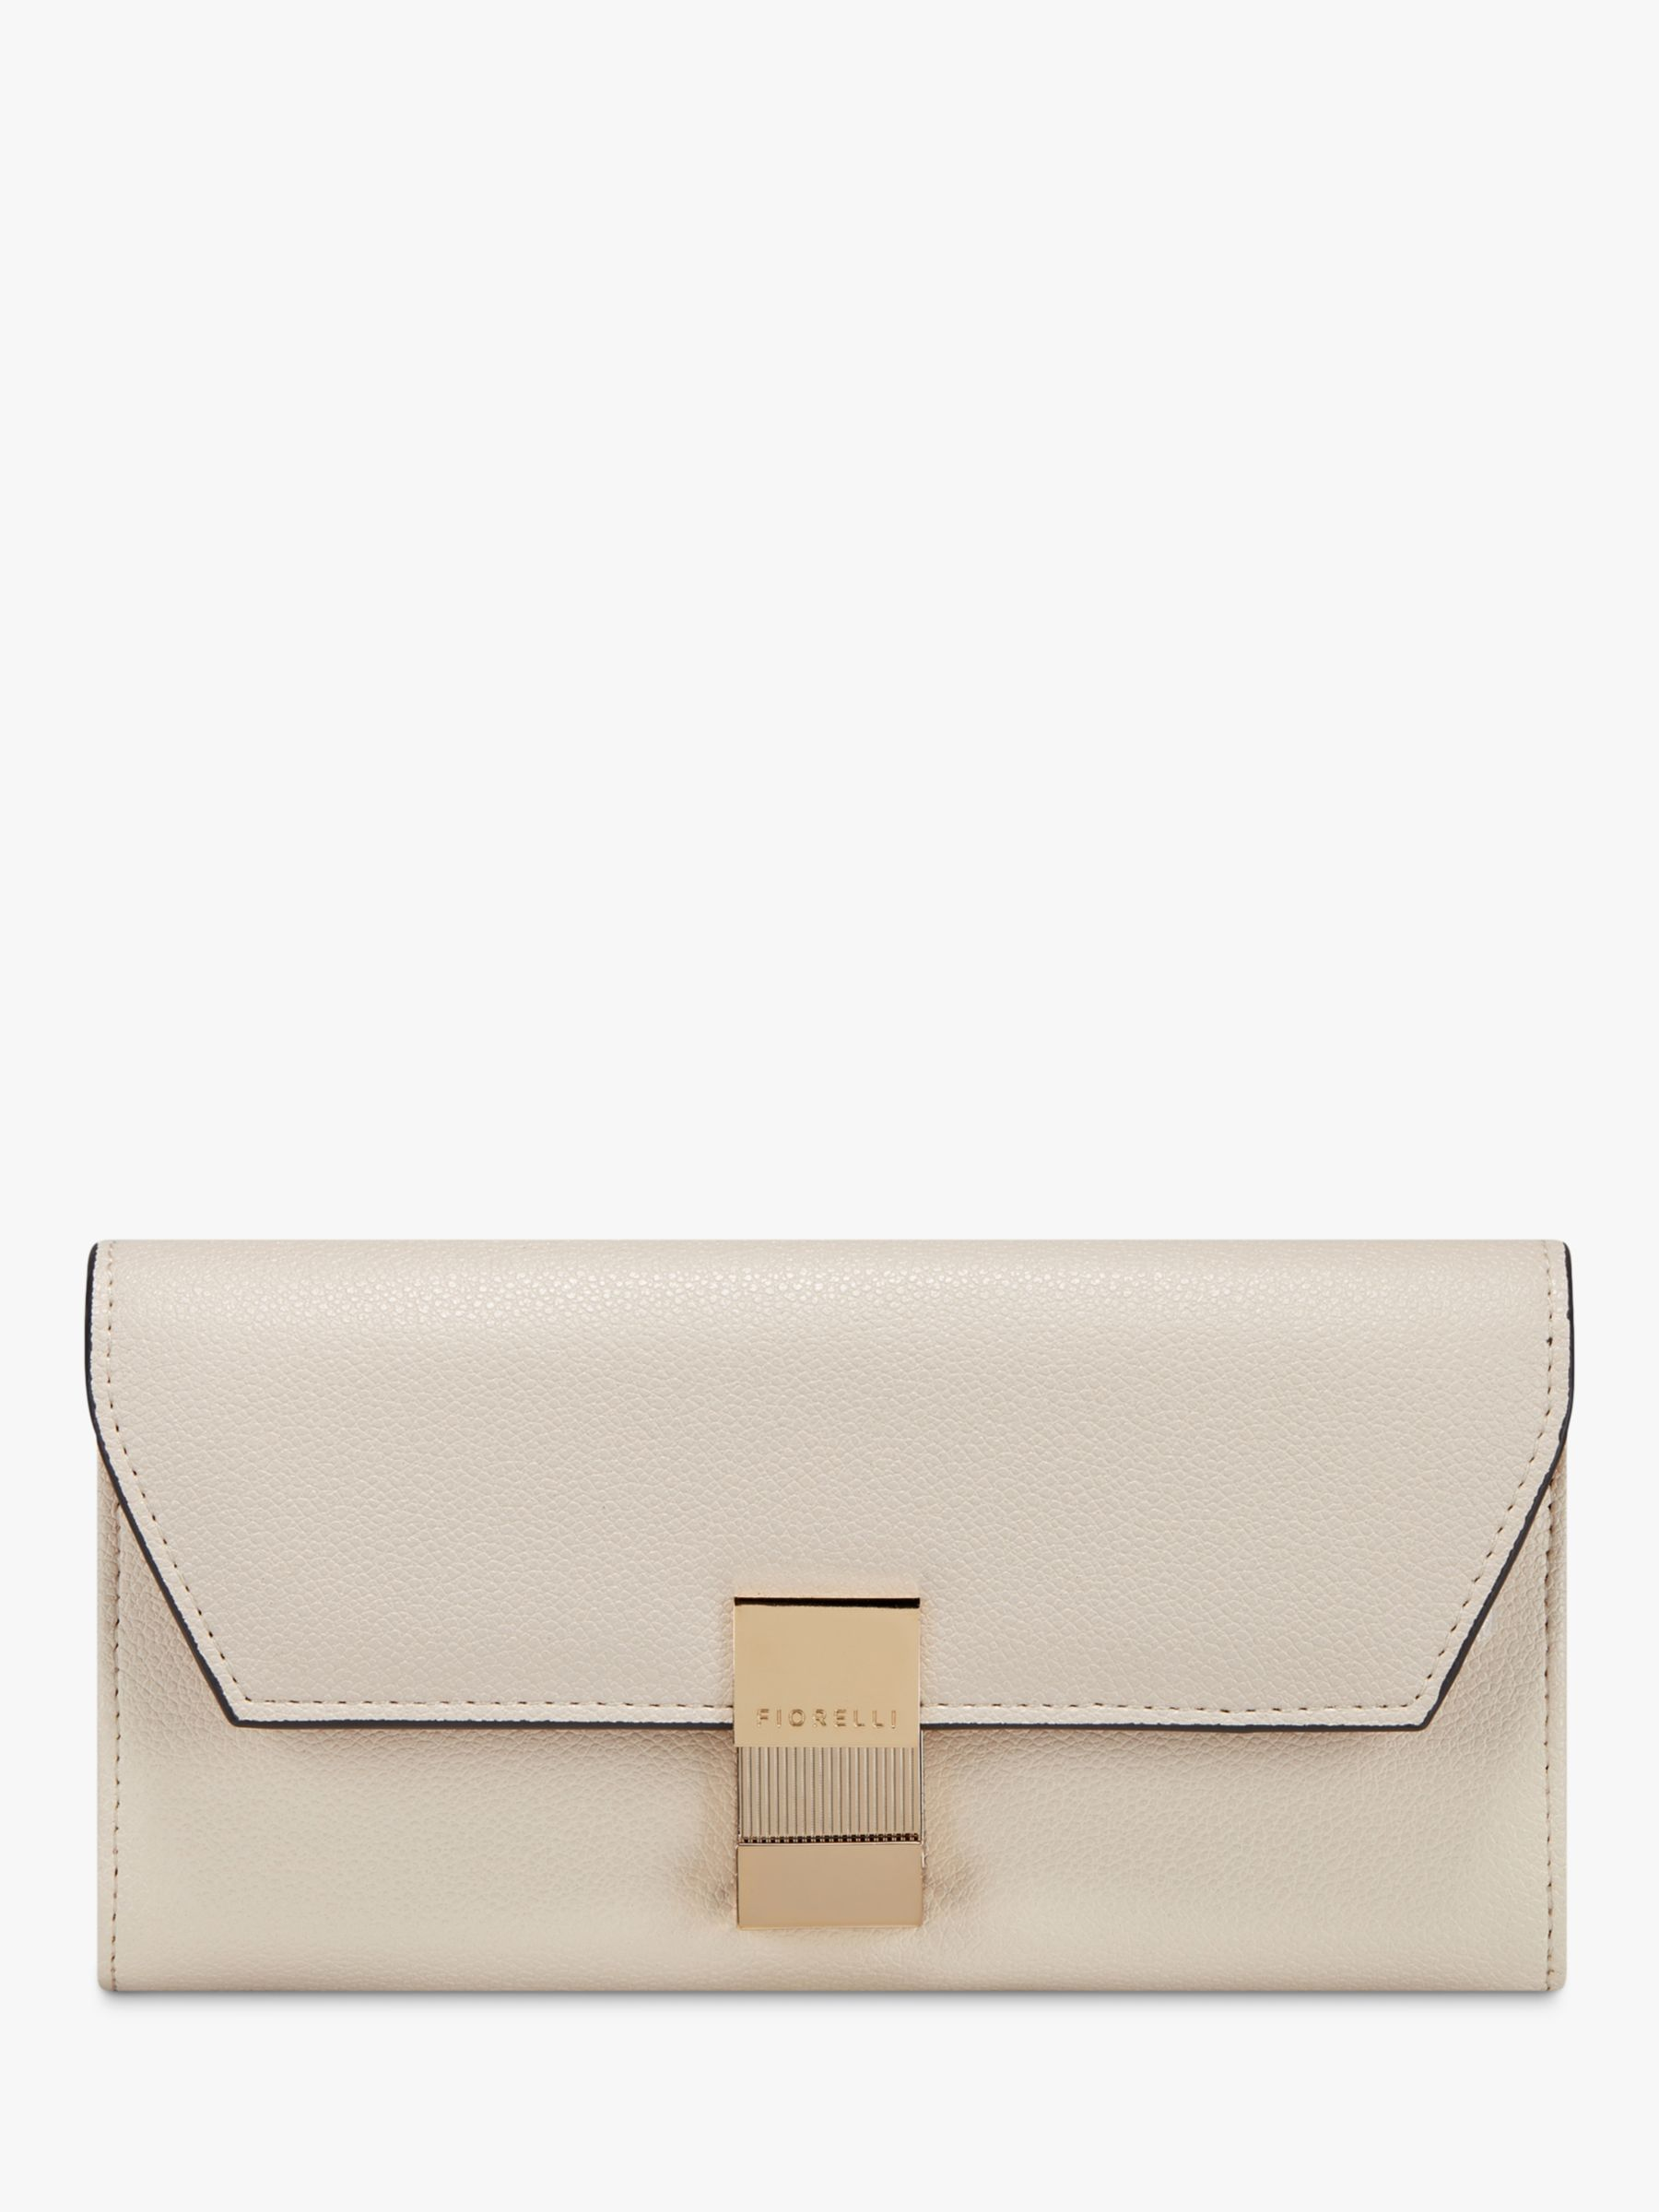 Fiorelli Fiorelli Kendall Flap Over Purse